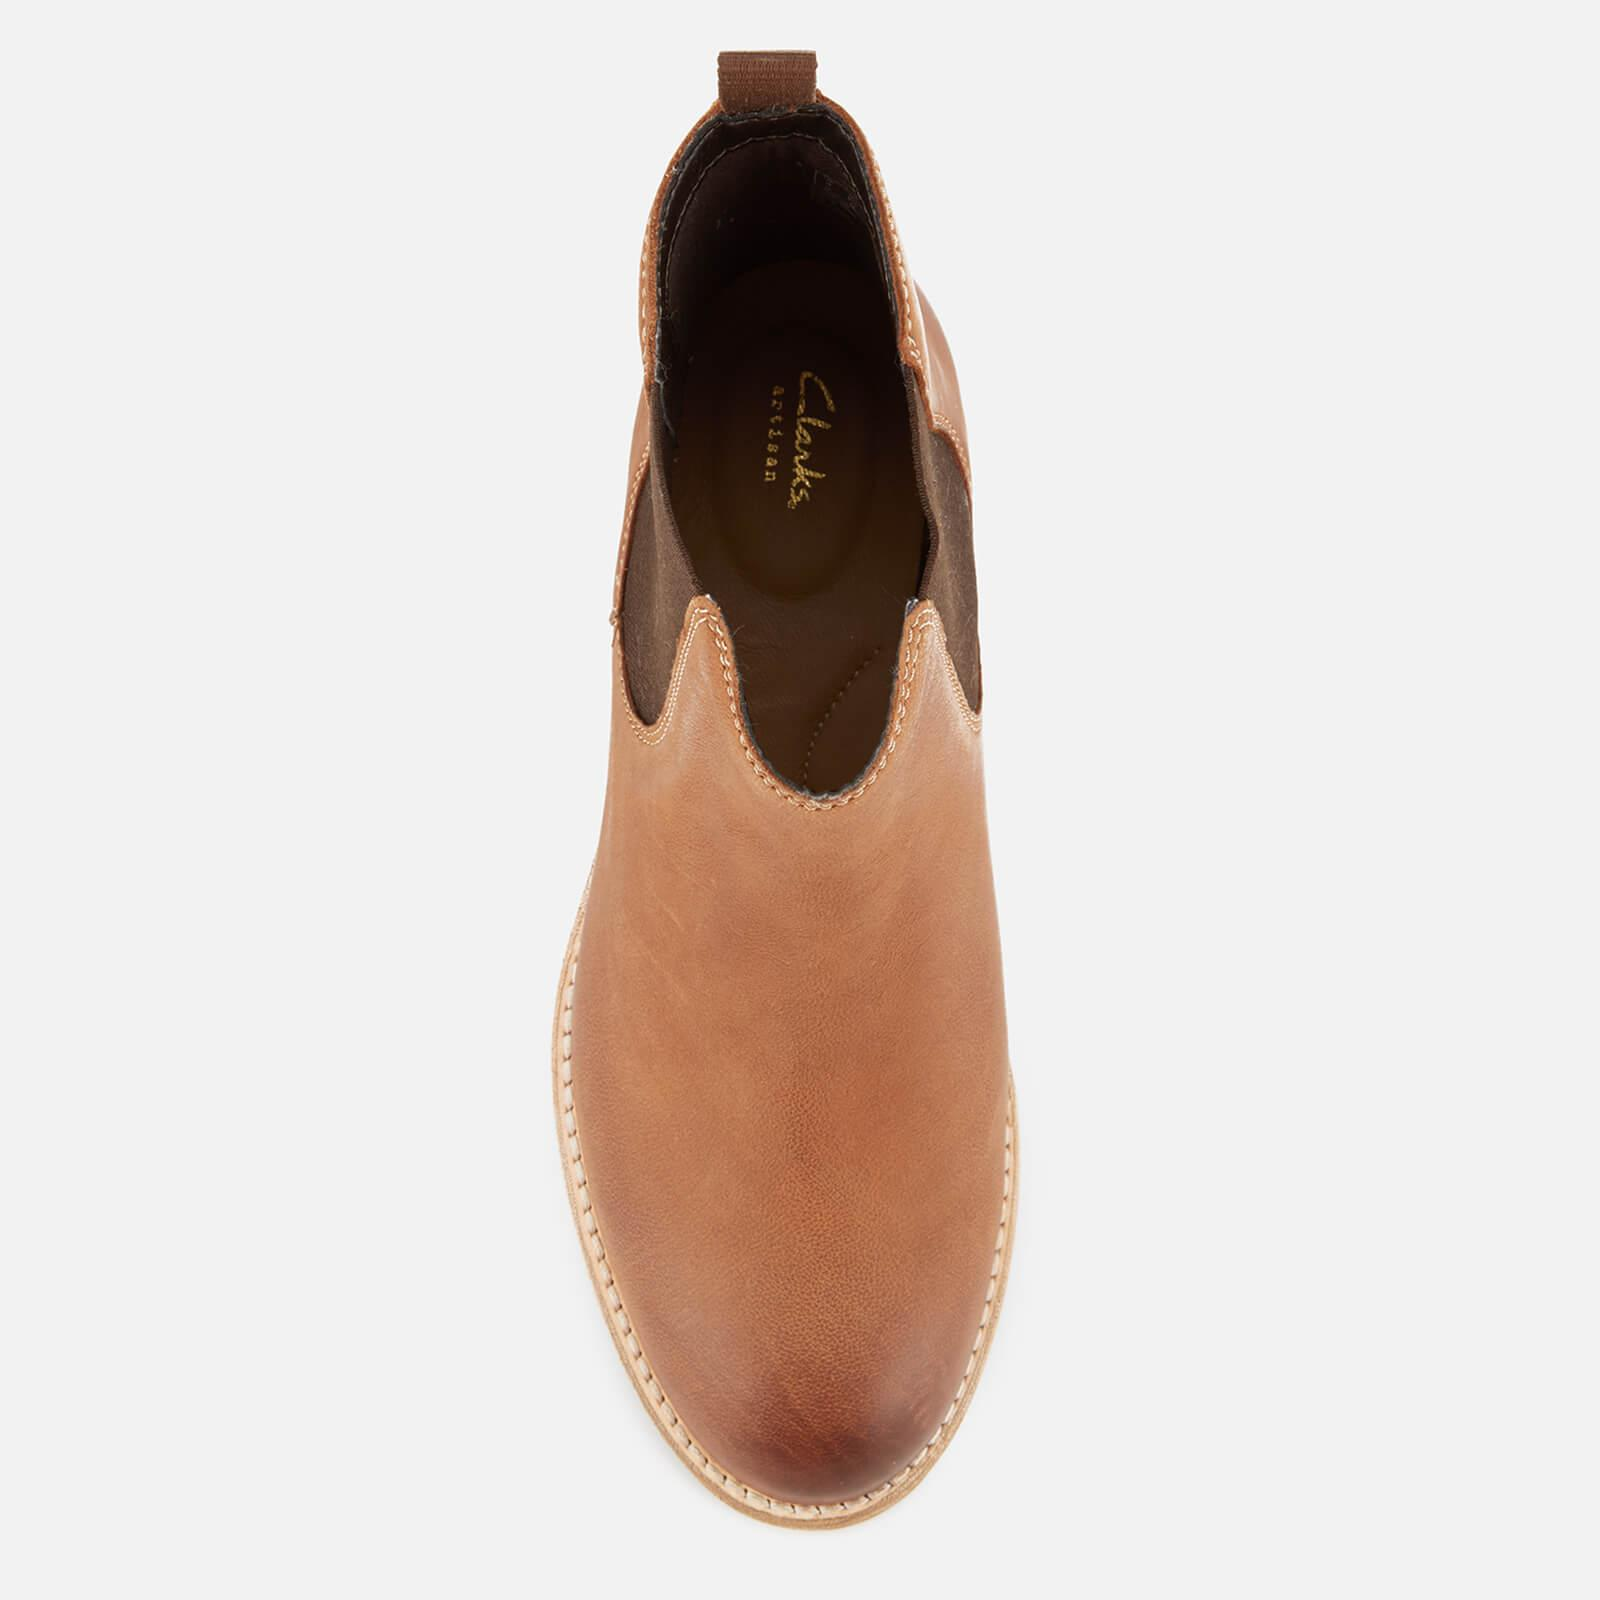 85037f17 Clarks Brown Women's Maypearl Nala Leather Chelsea Boots